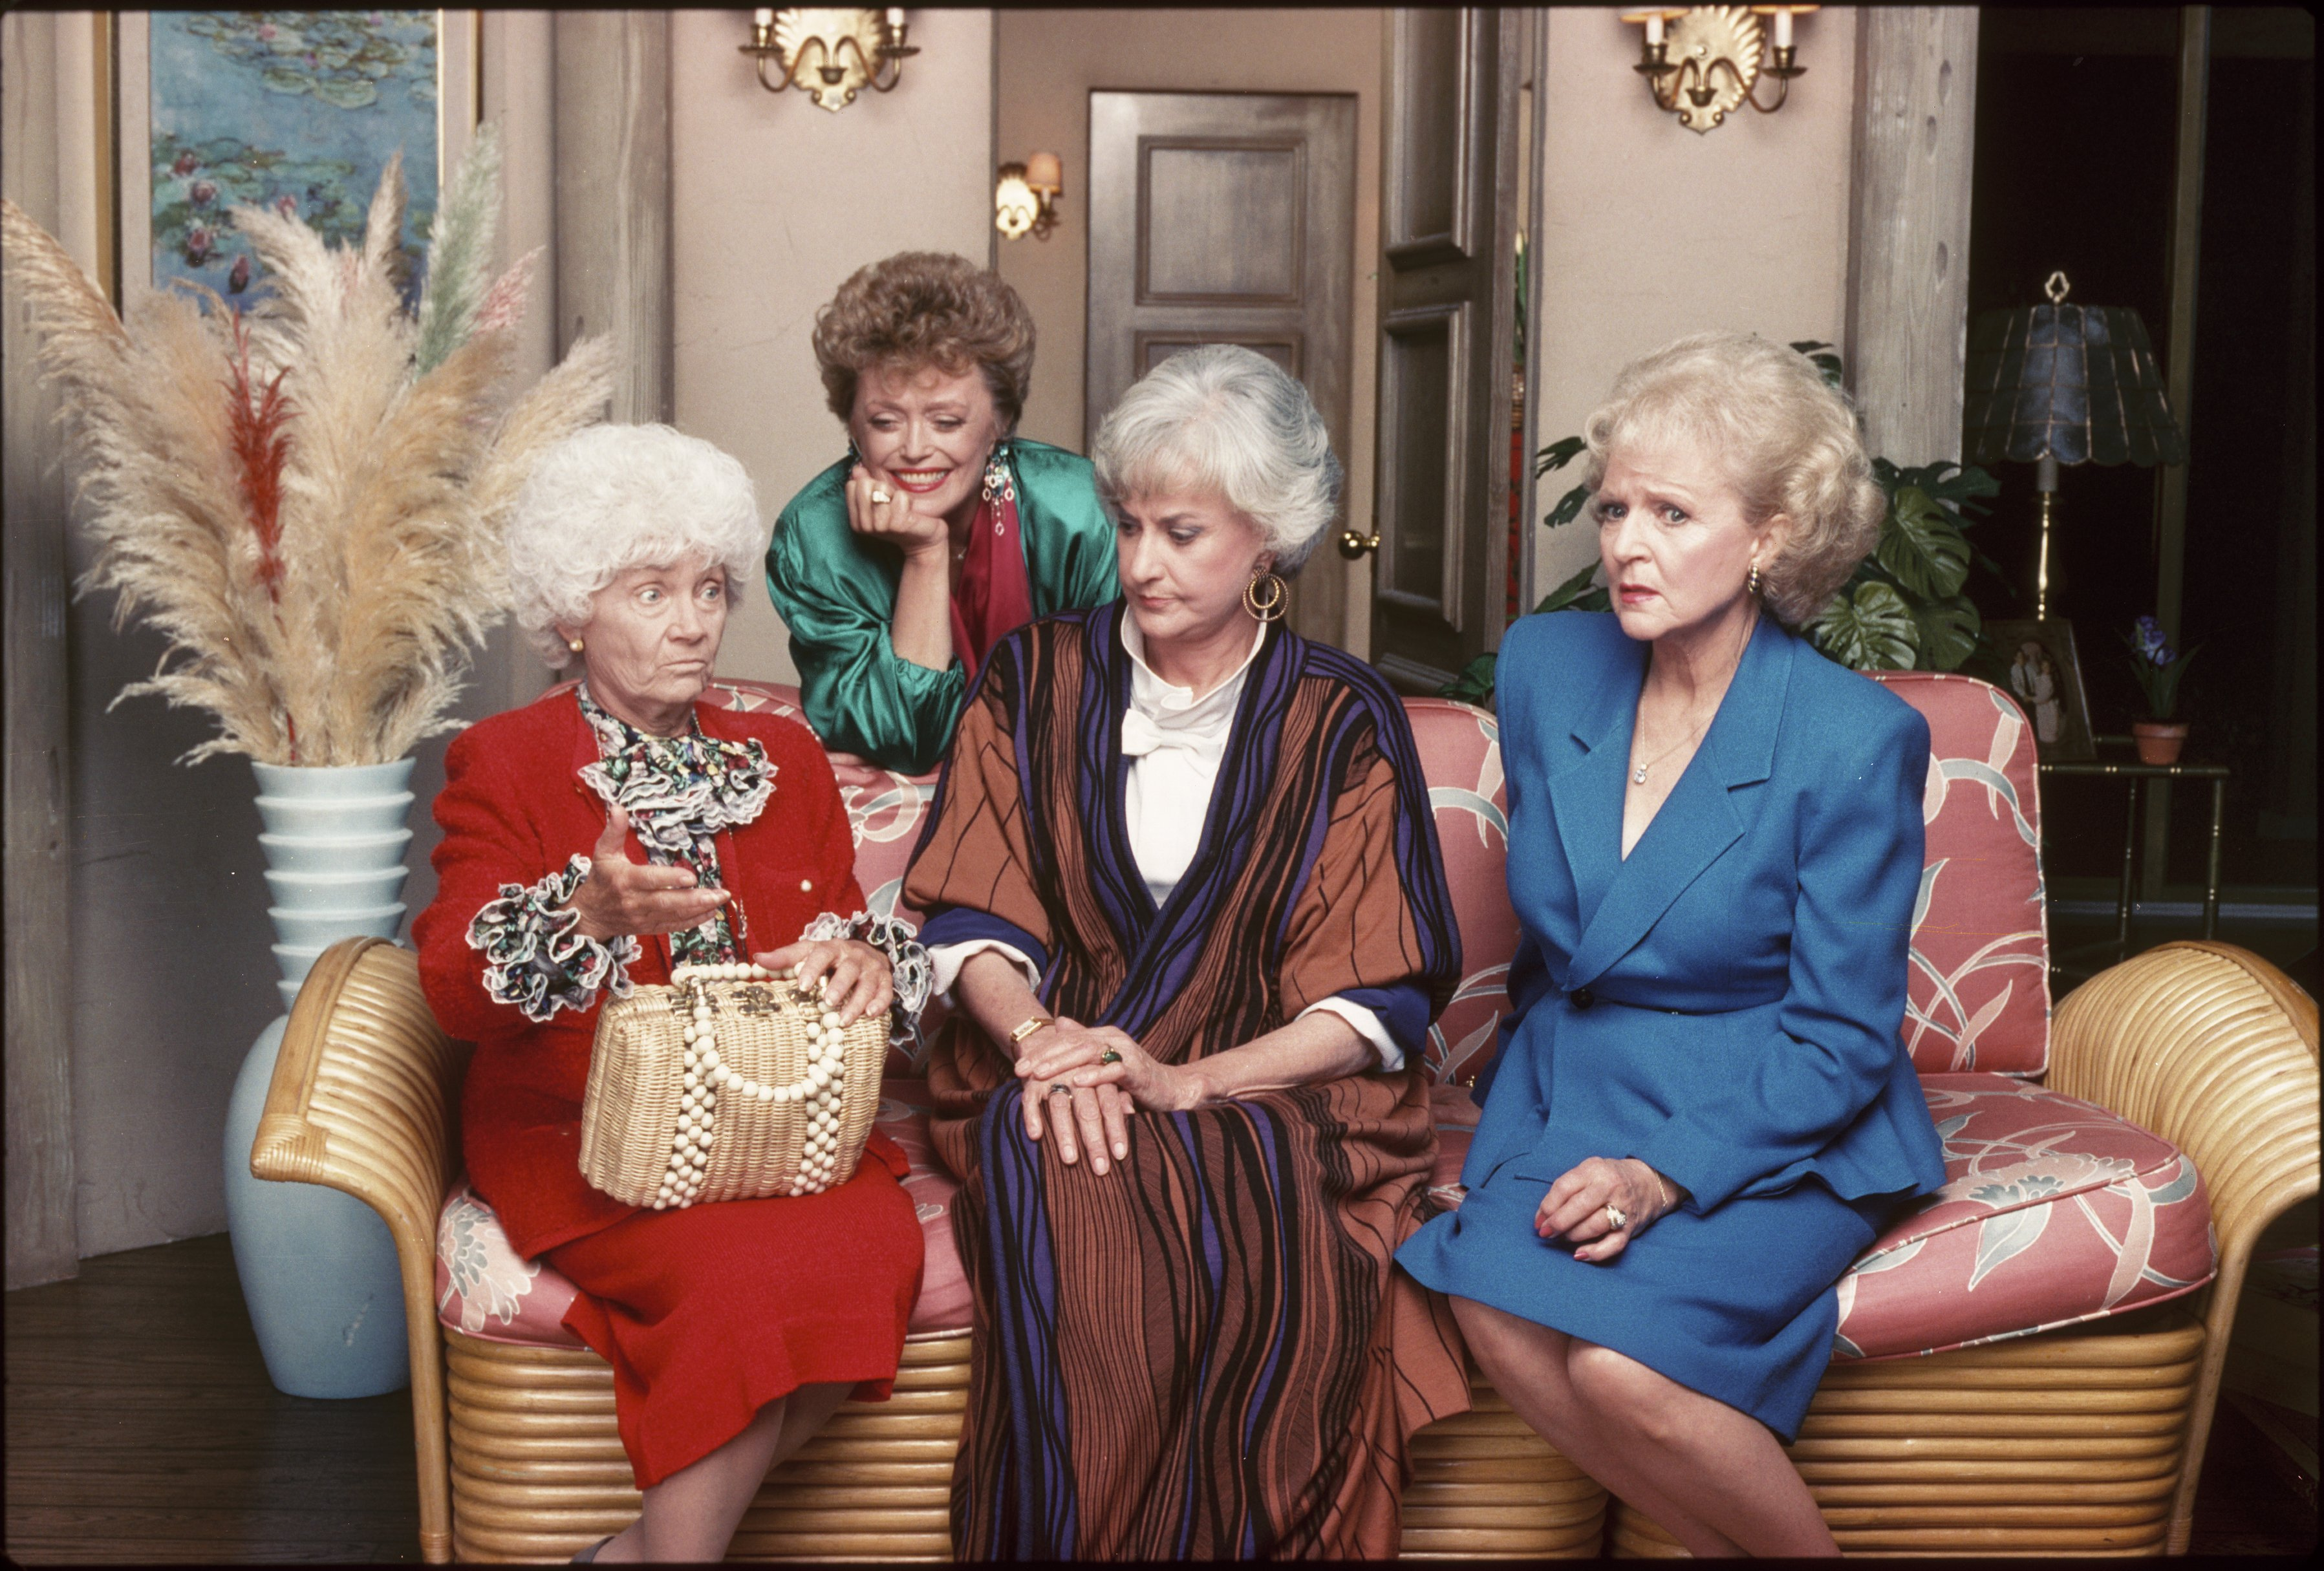 Rue McClanahan, Estelle Getty, Bea Arthur y Betty White. | Foto: Getty Images